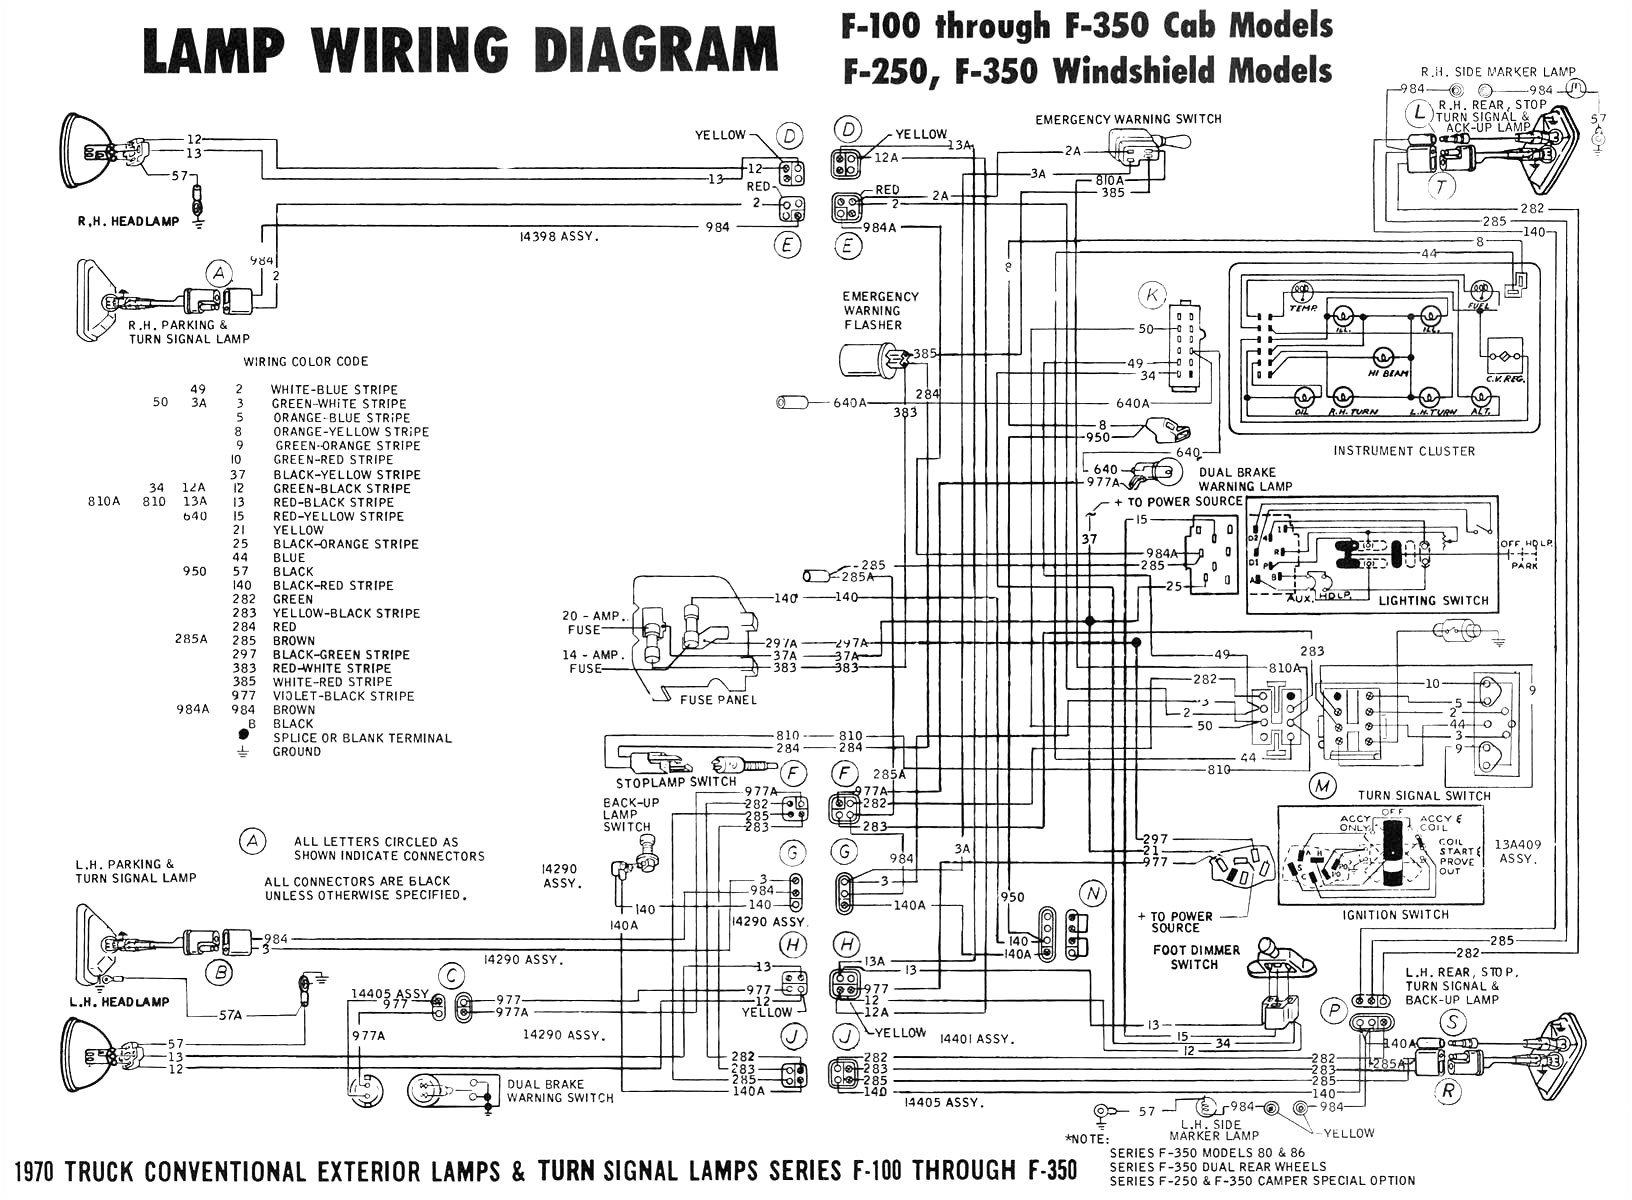 genz benz wiring diagrams wiring diagram expert ford ranger trailer wiring diagram tow package and wiring